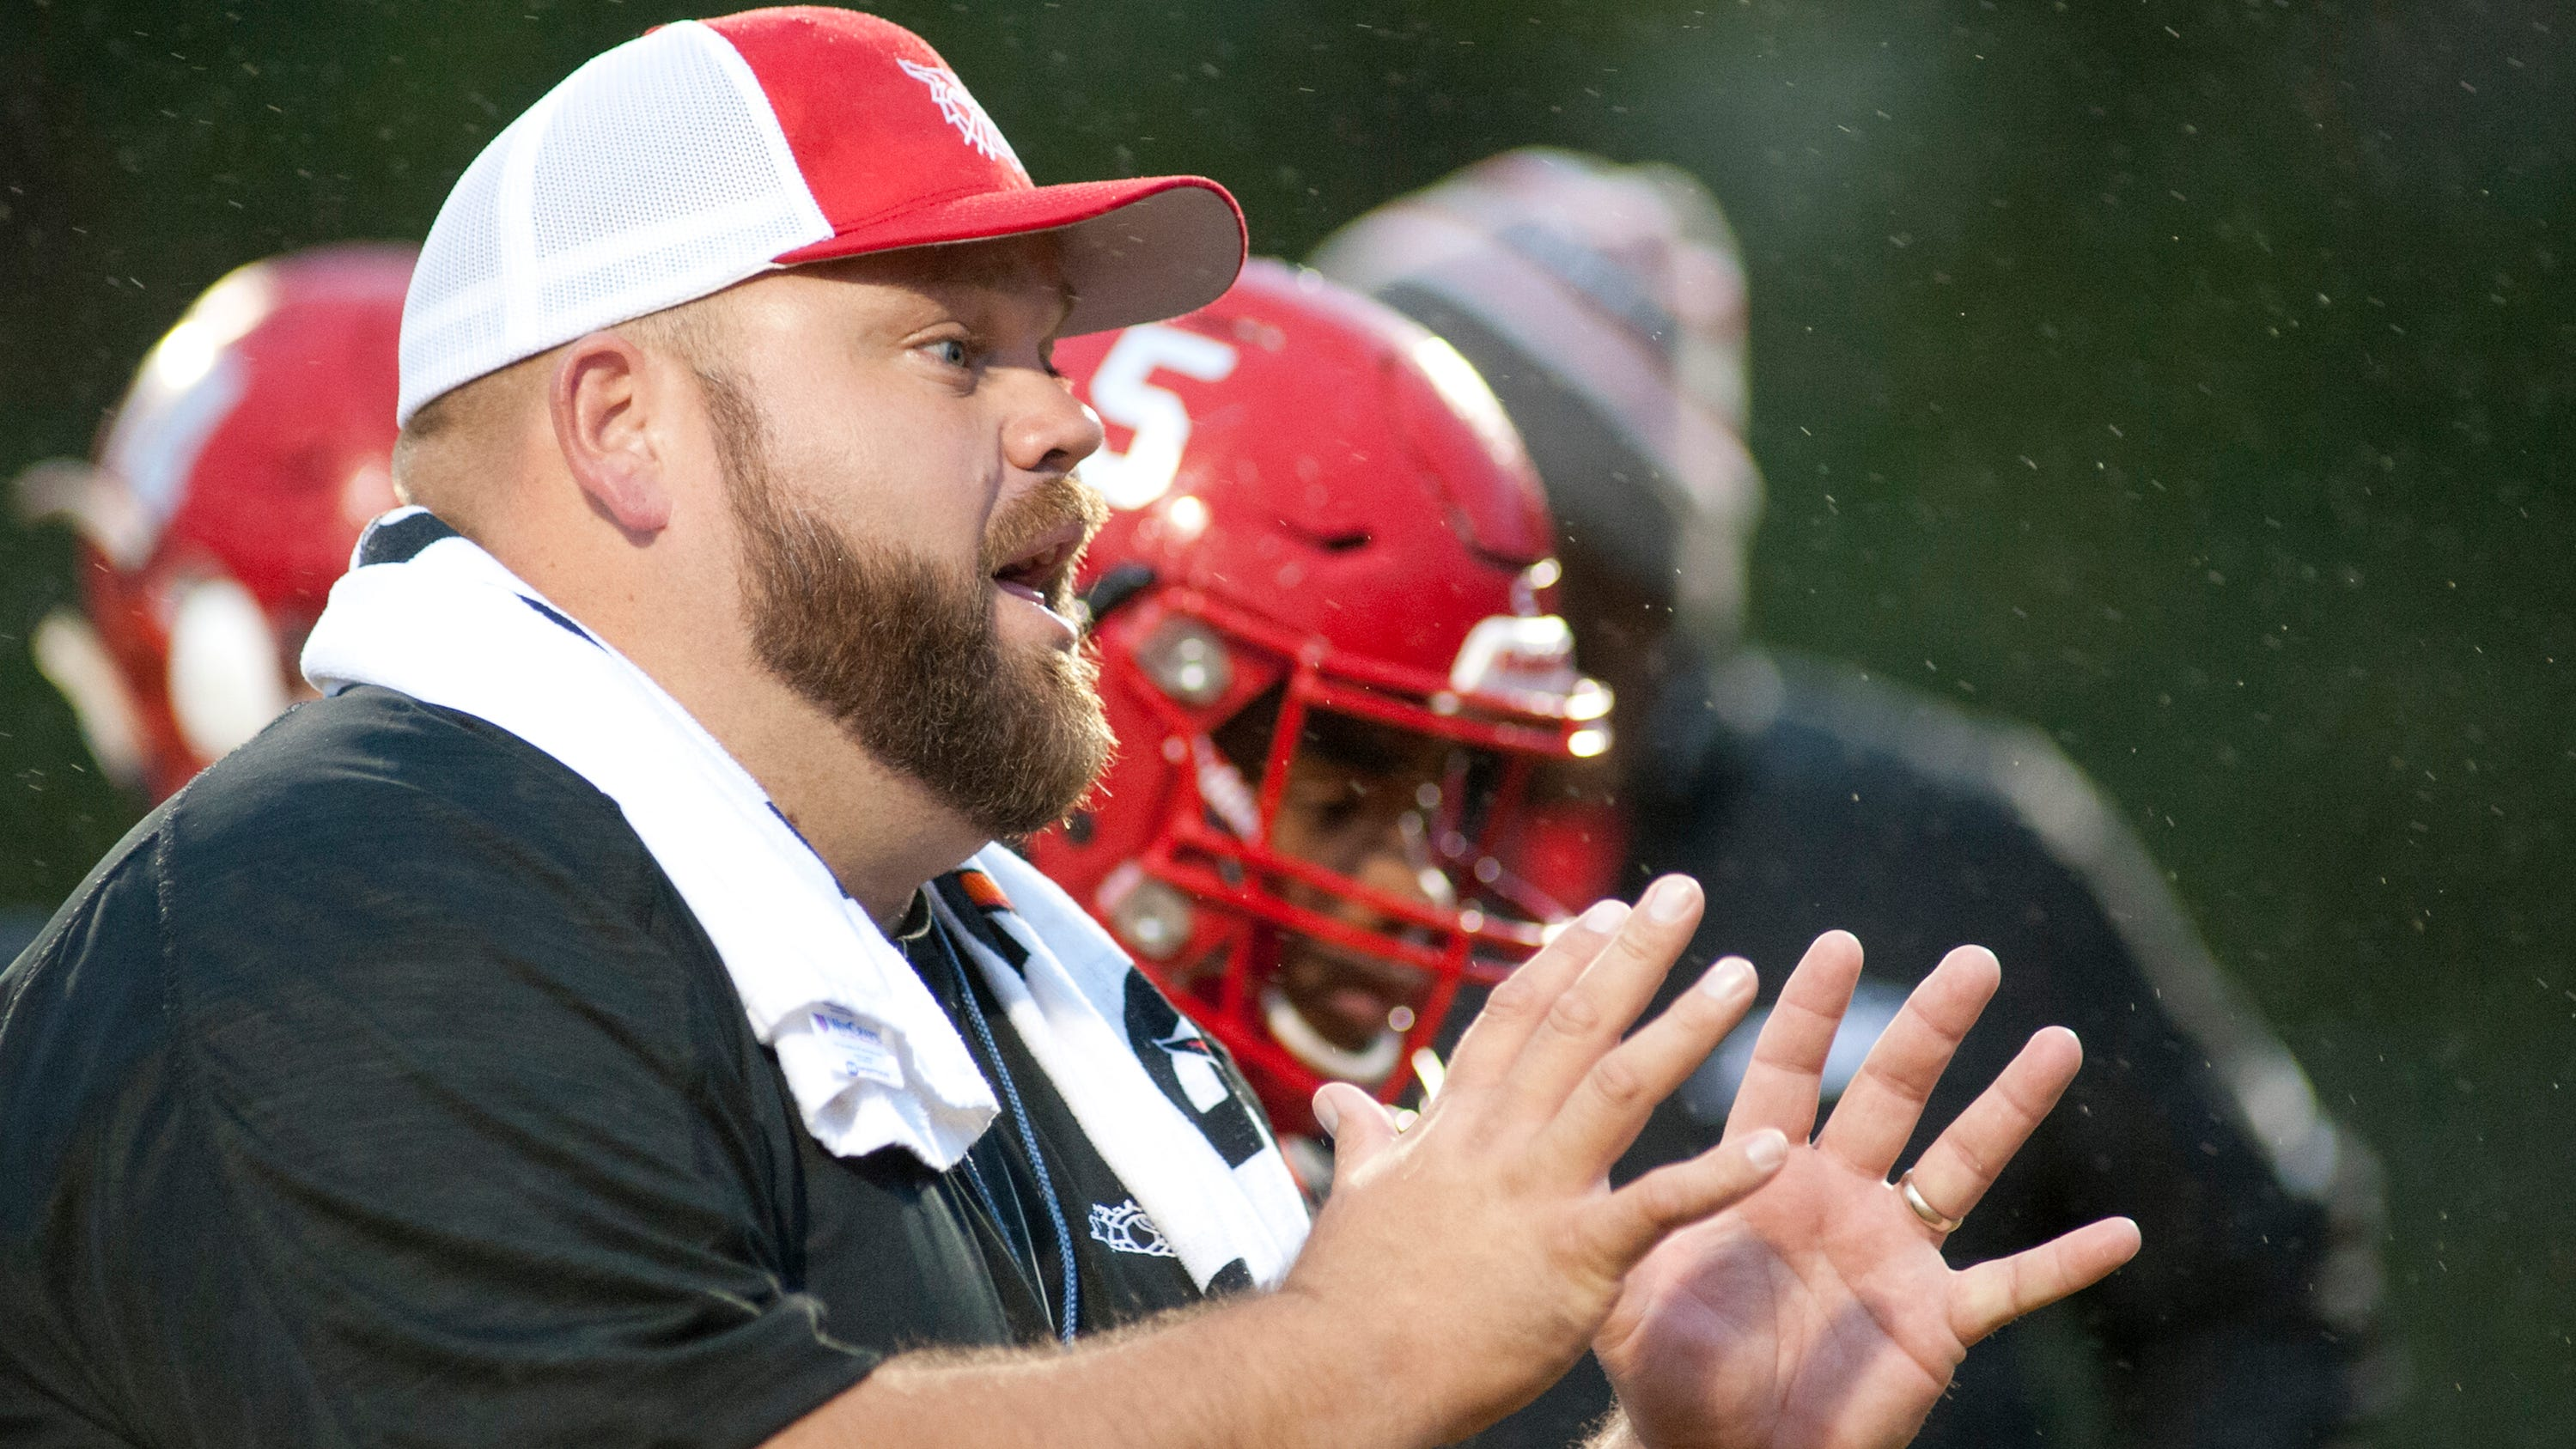 Kentucky High School Football Coach Fired After Exchanging Sexual